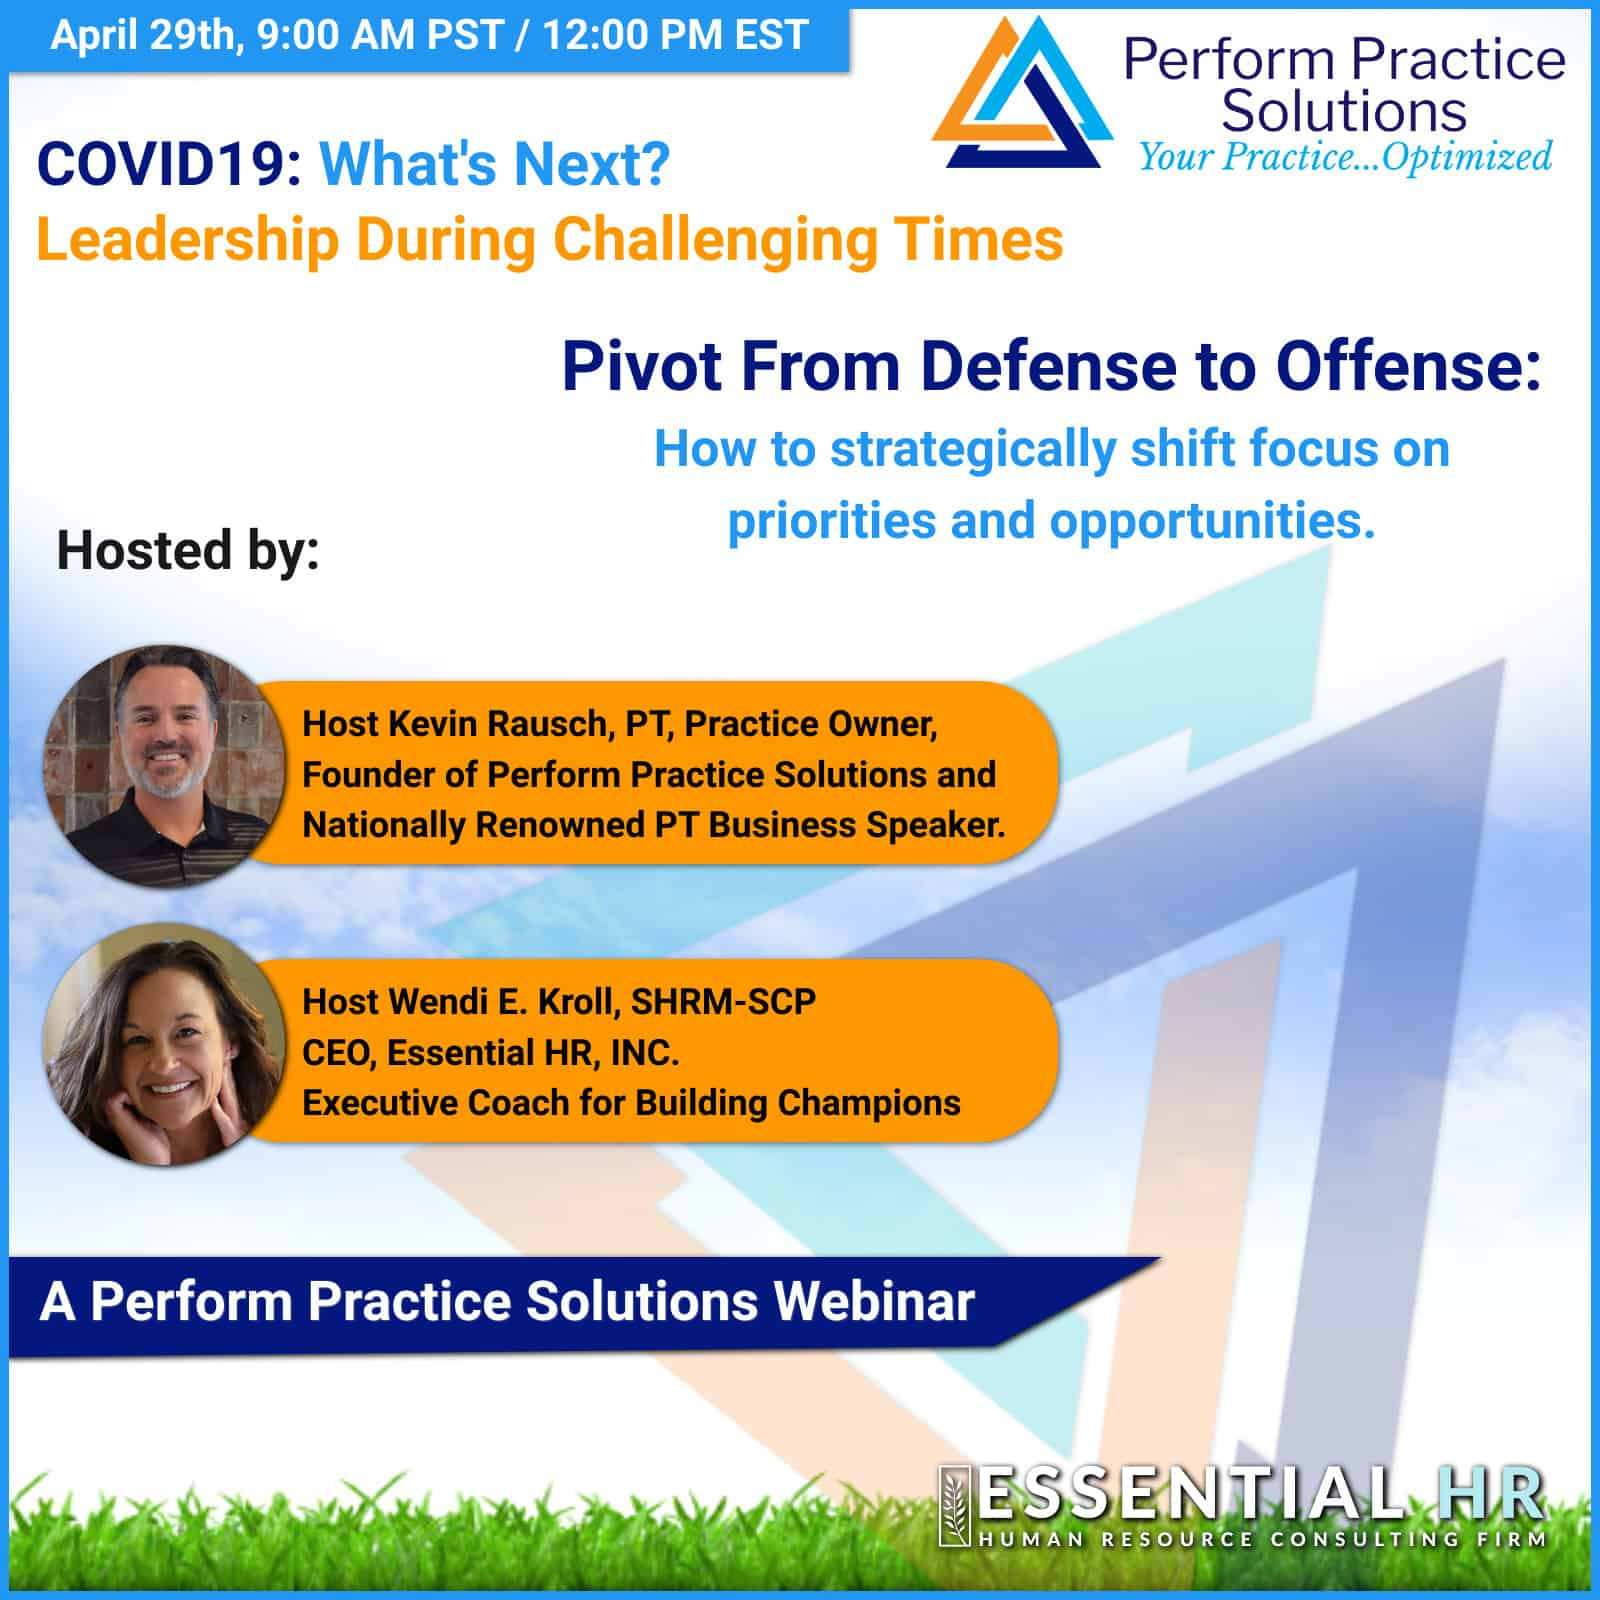 Covid19: What's Next? Pivoting from Defense to Offense